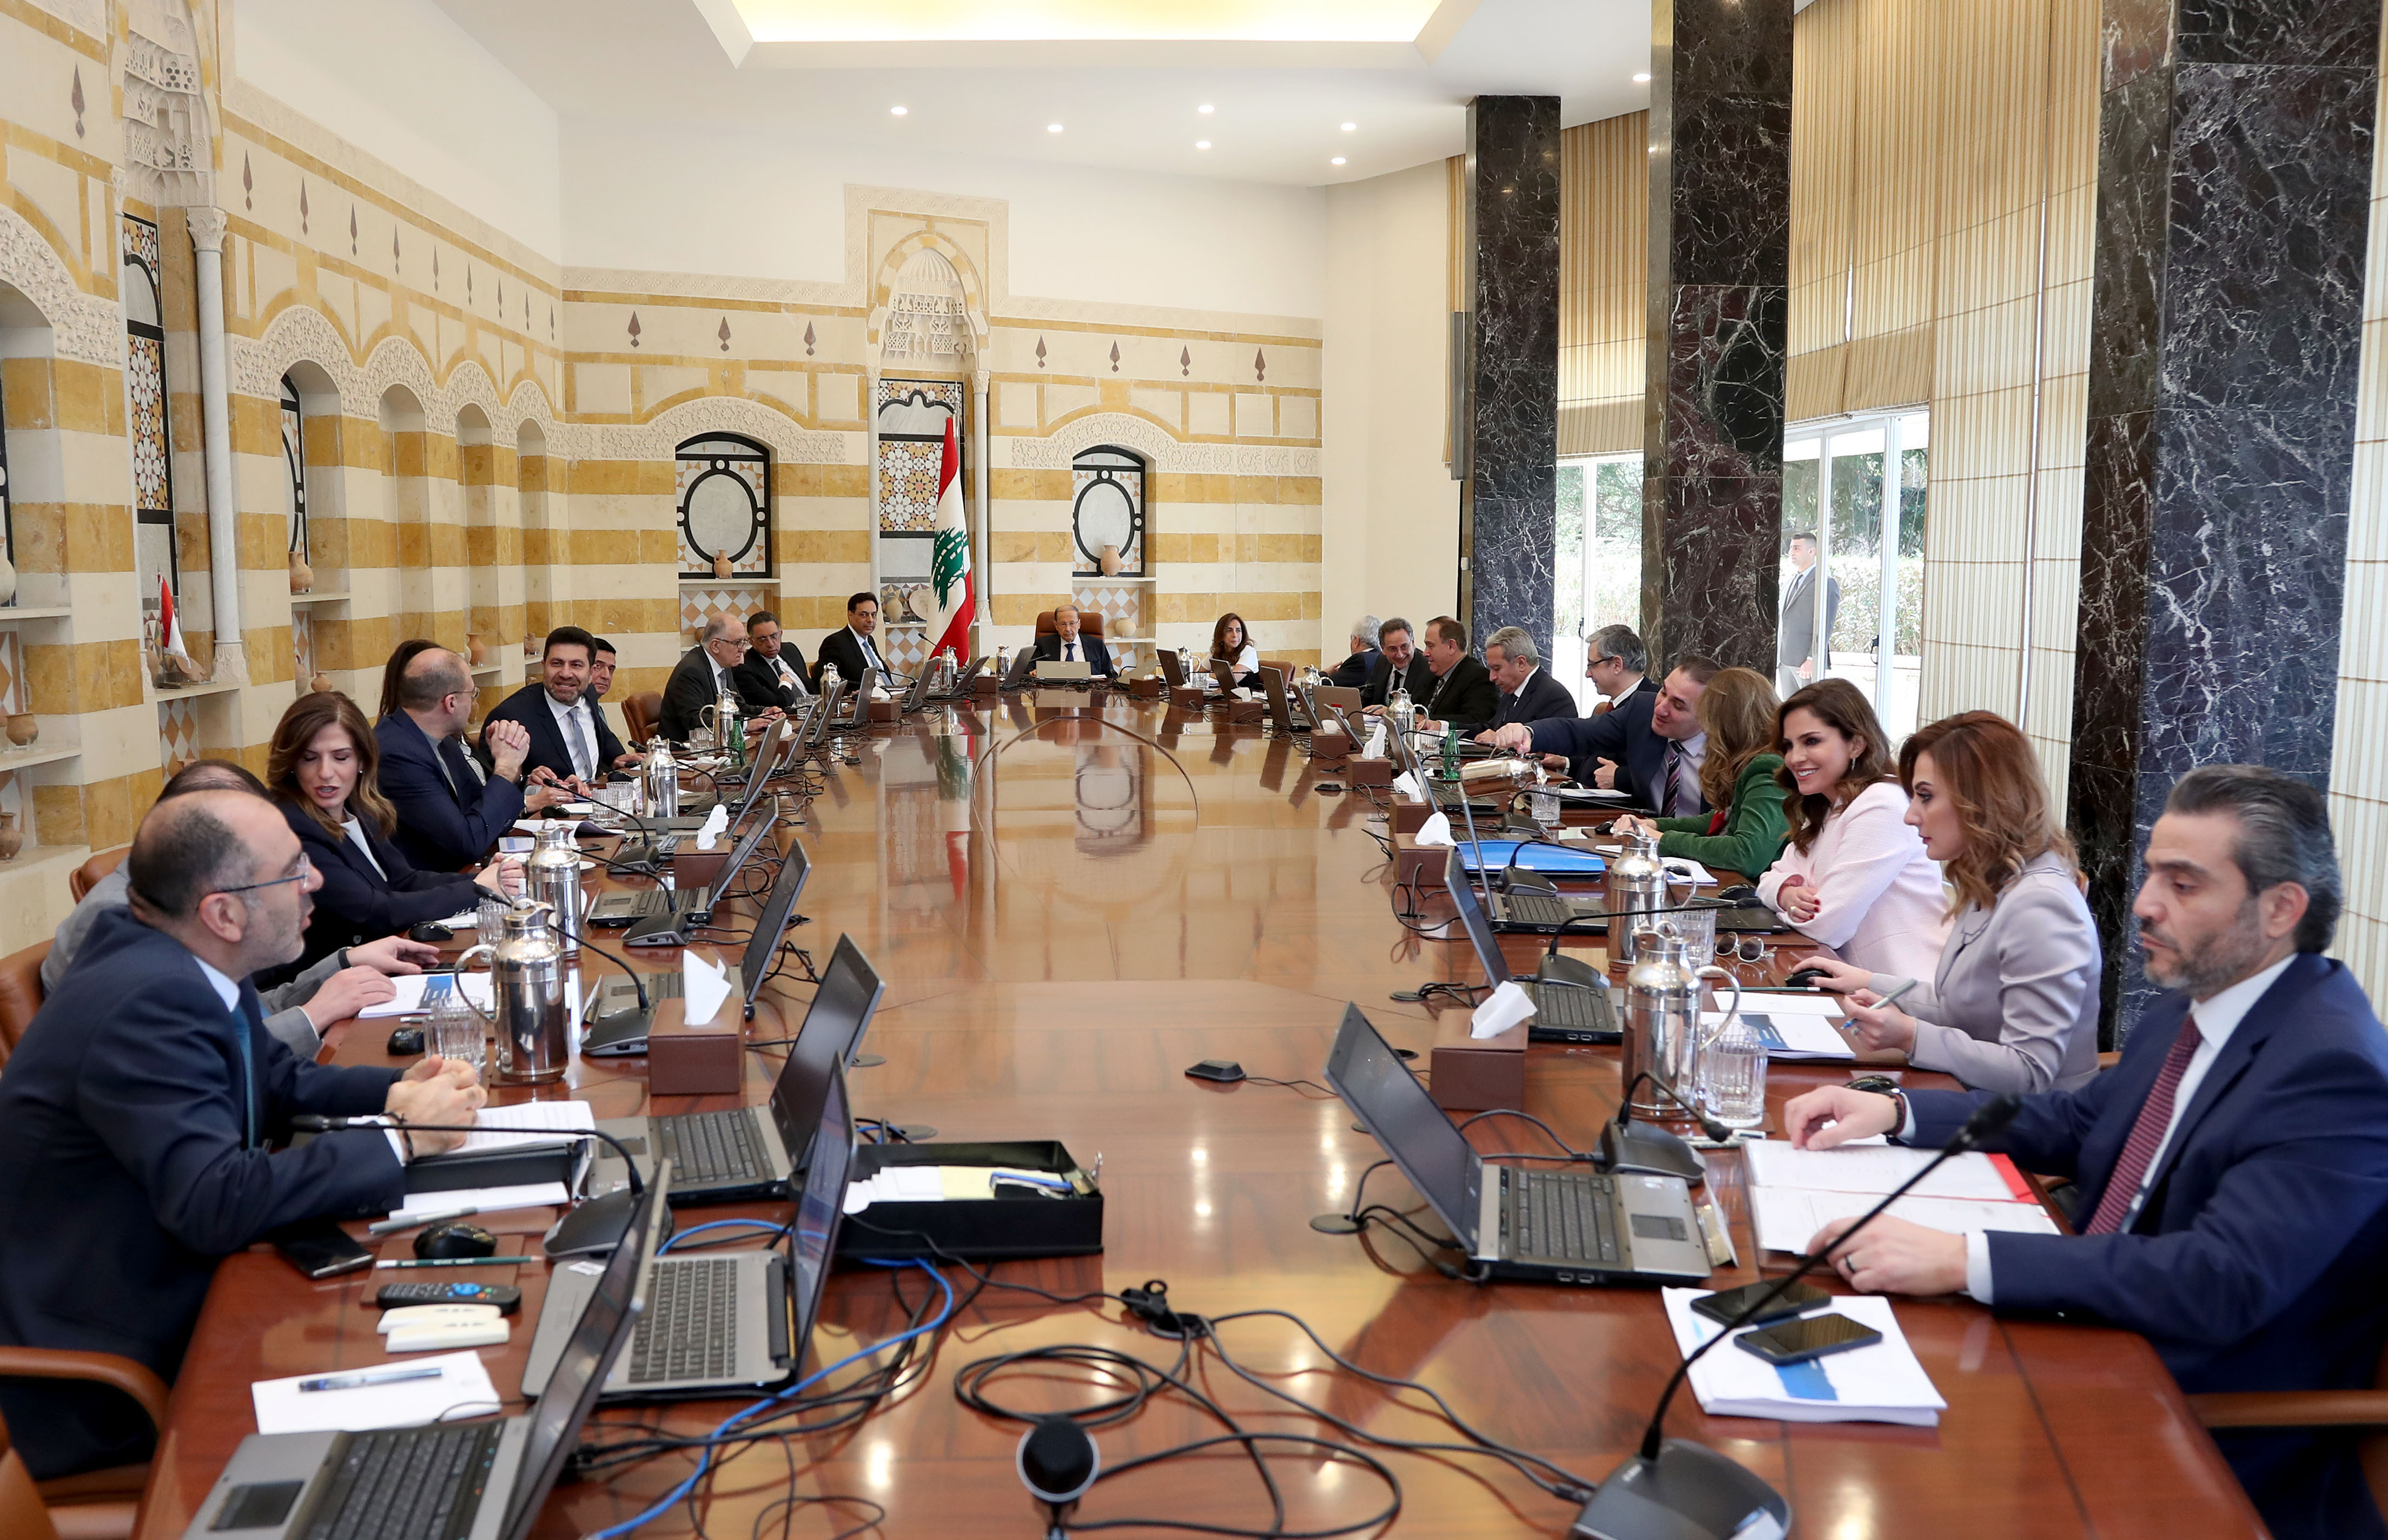 3 - Ministerial Council